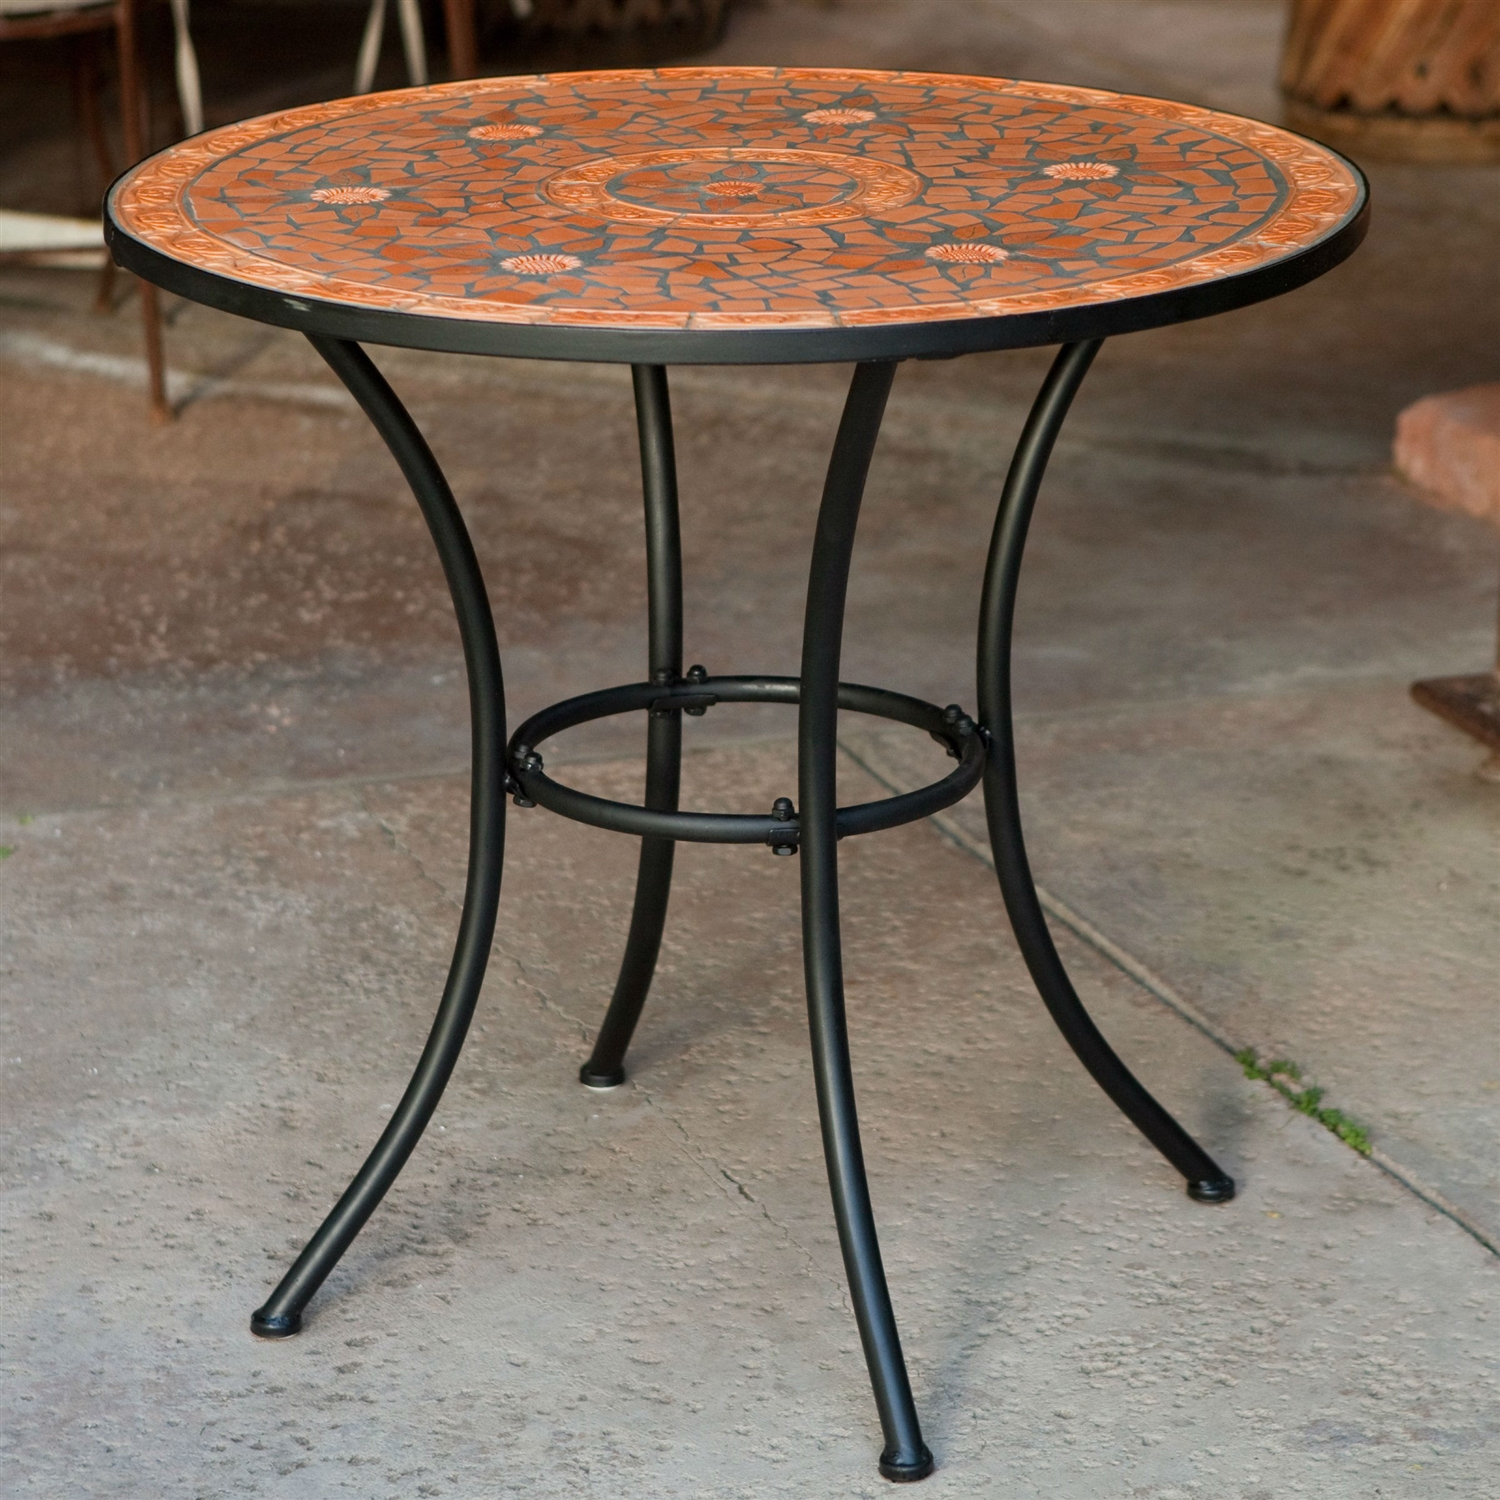 patio alfresco home tremiti mosaic outdoor bistro table elegant round with terracotta tiles and furniture end tables mauriciohm black metal frame garden small iron side plastic